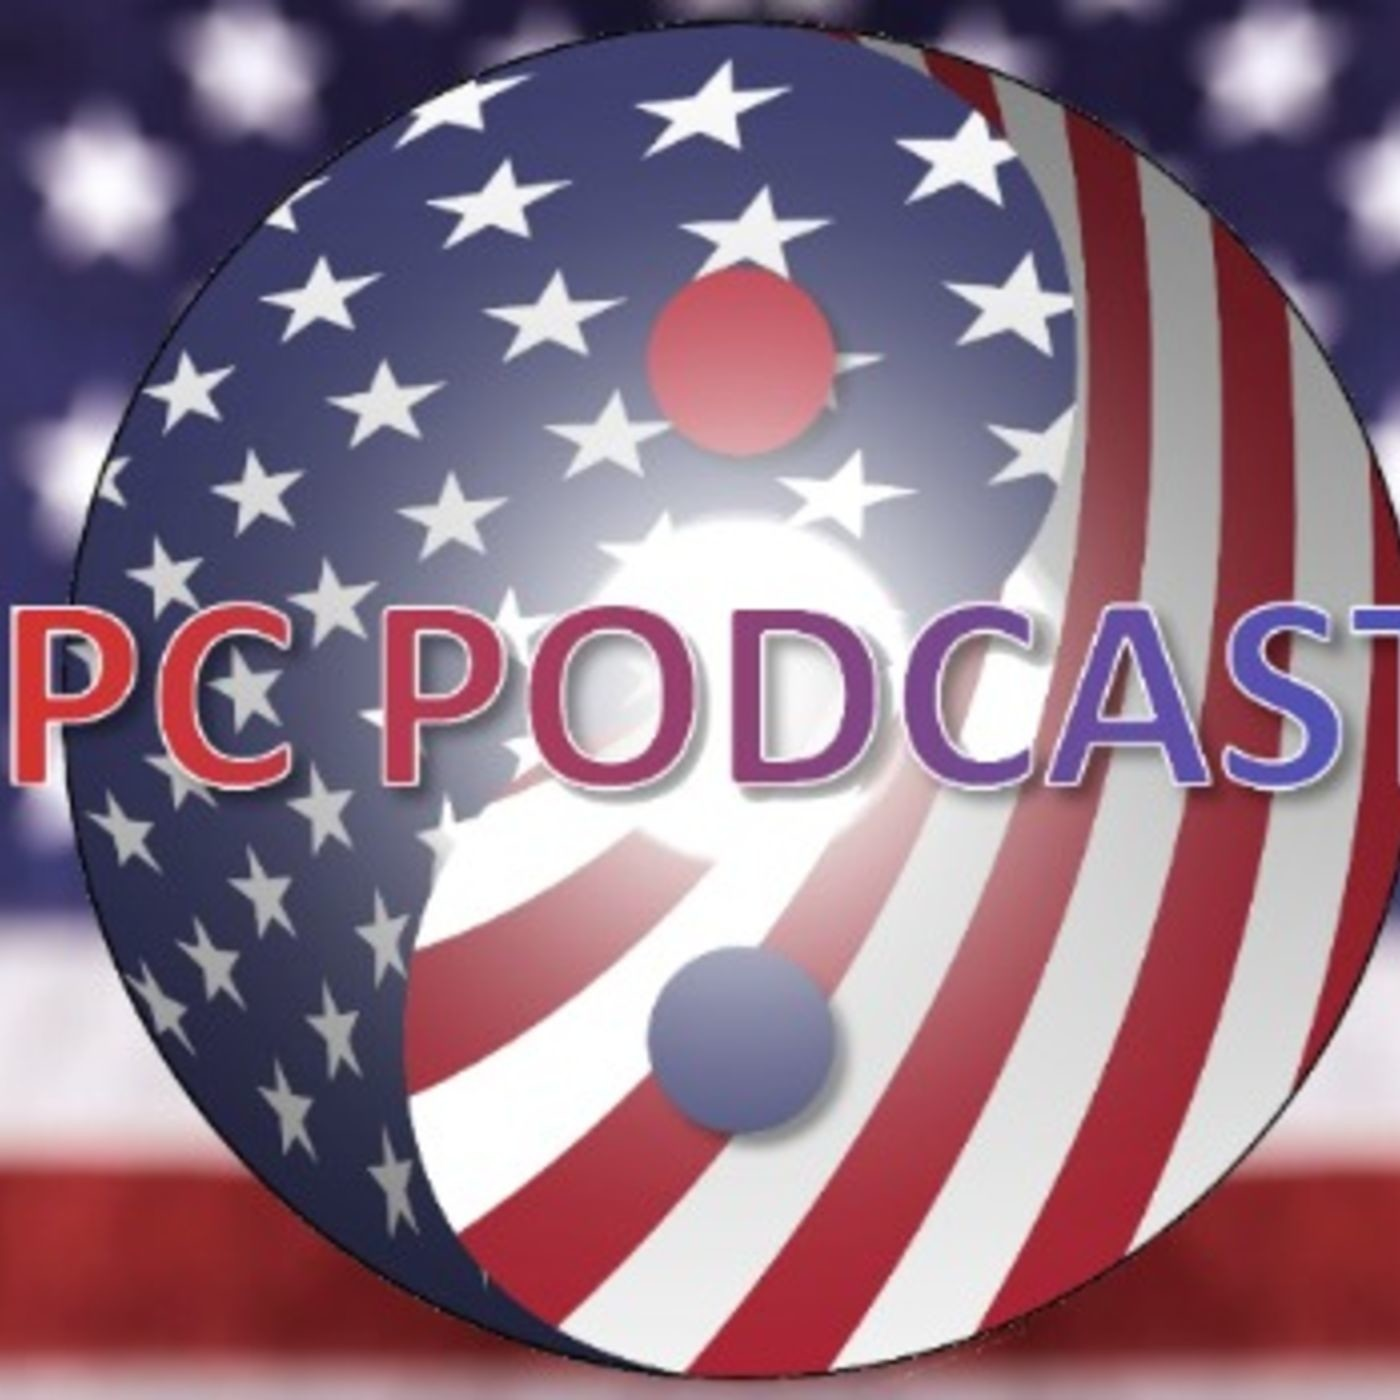 PC Podcast